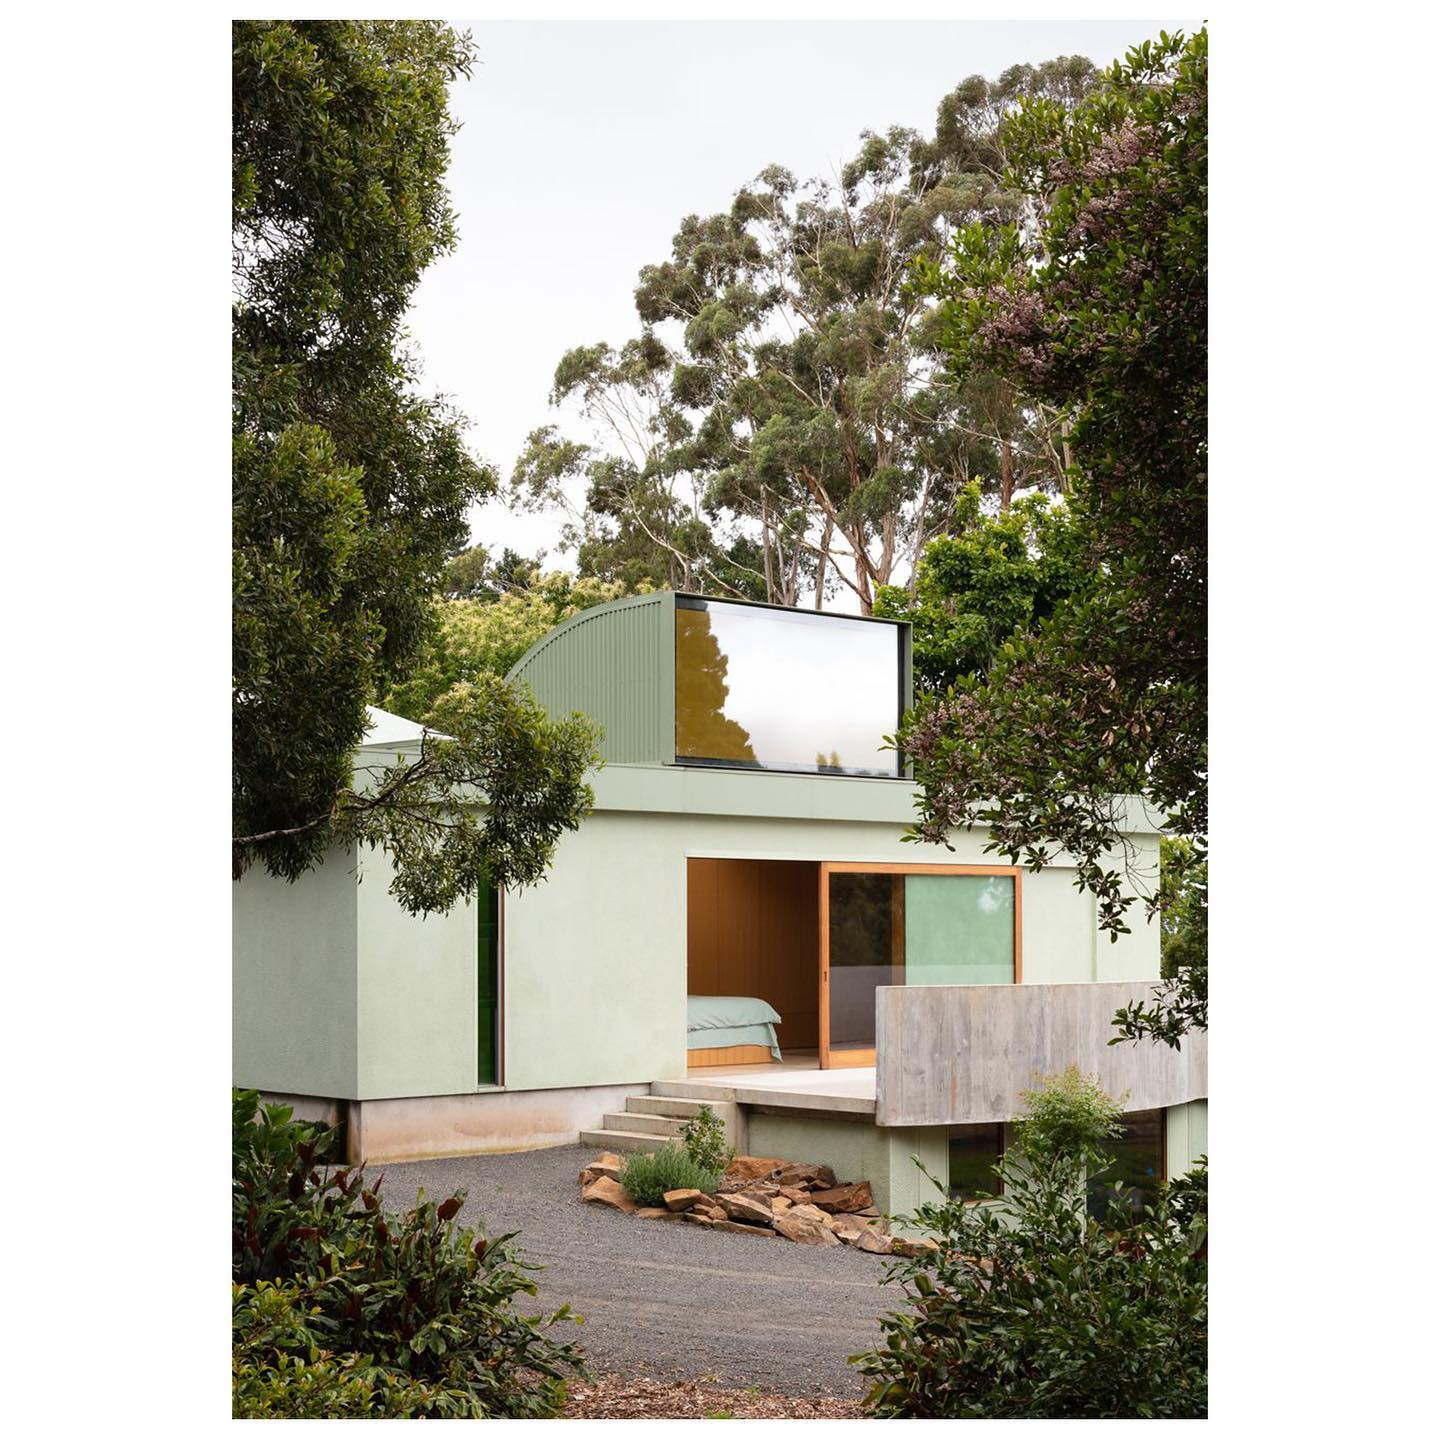 Located in the New South Wales Southern Highlands, this stun